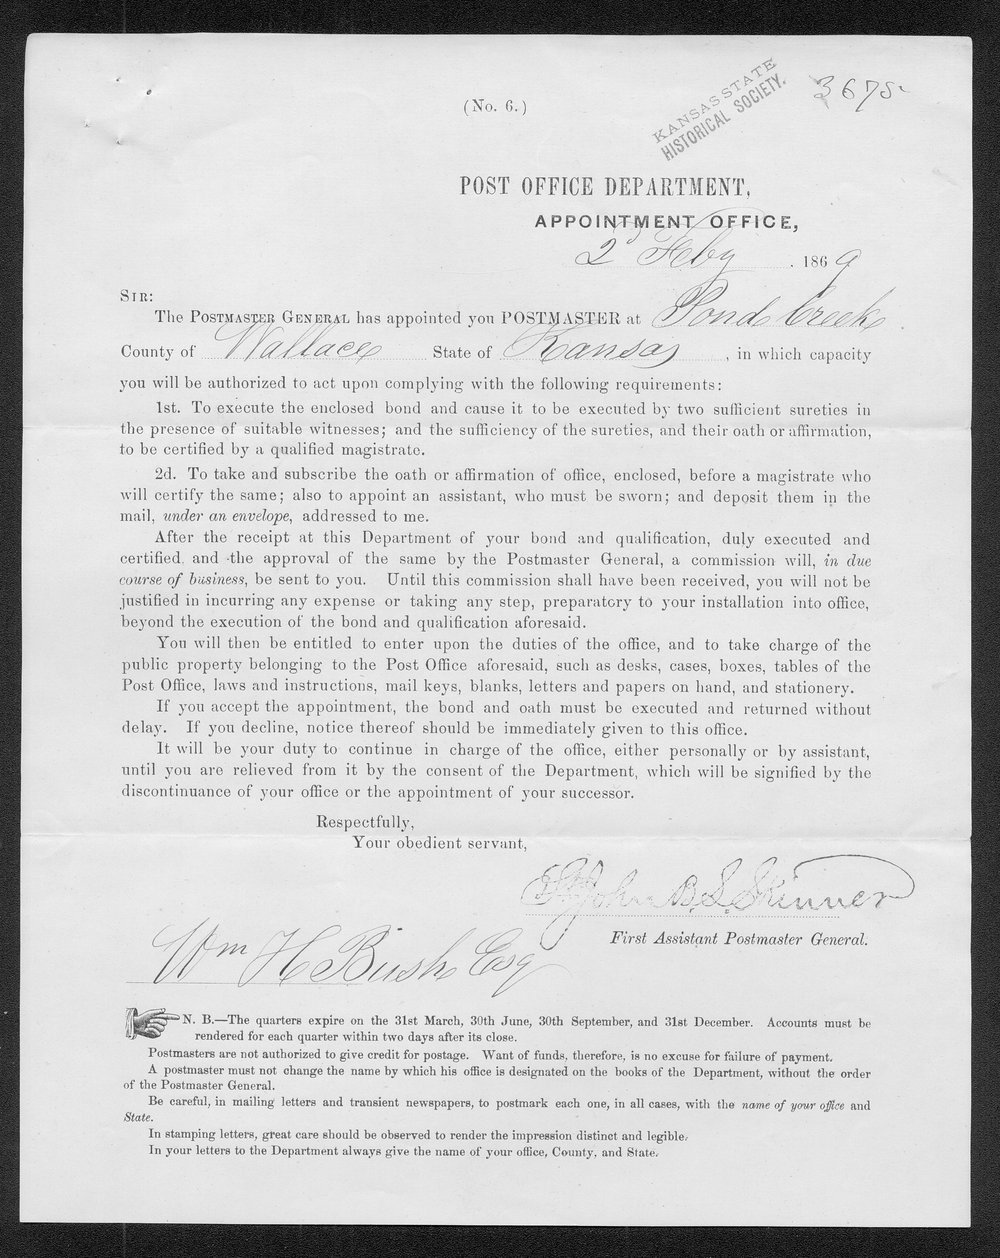 Appointment of William H. Bush to postmaster at Pond Creek, Wallace County, Kansas - 1